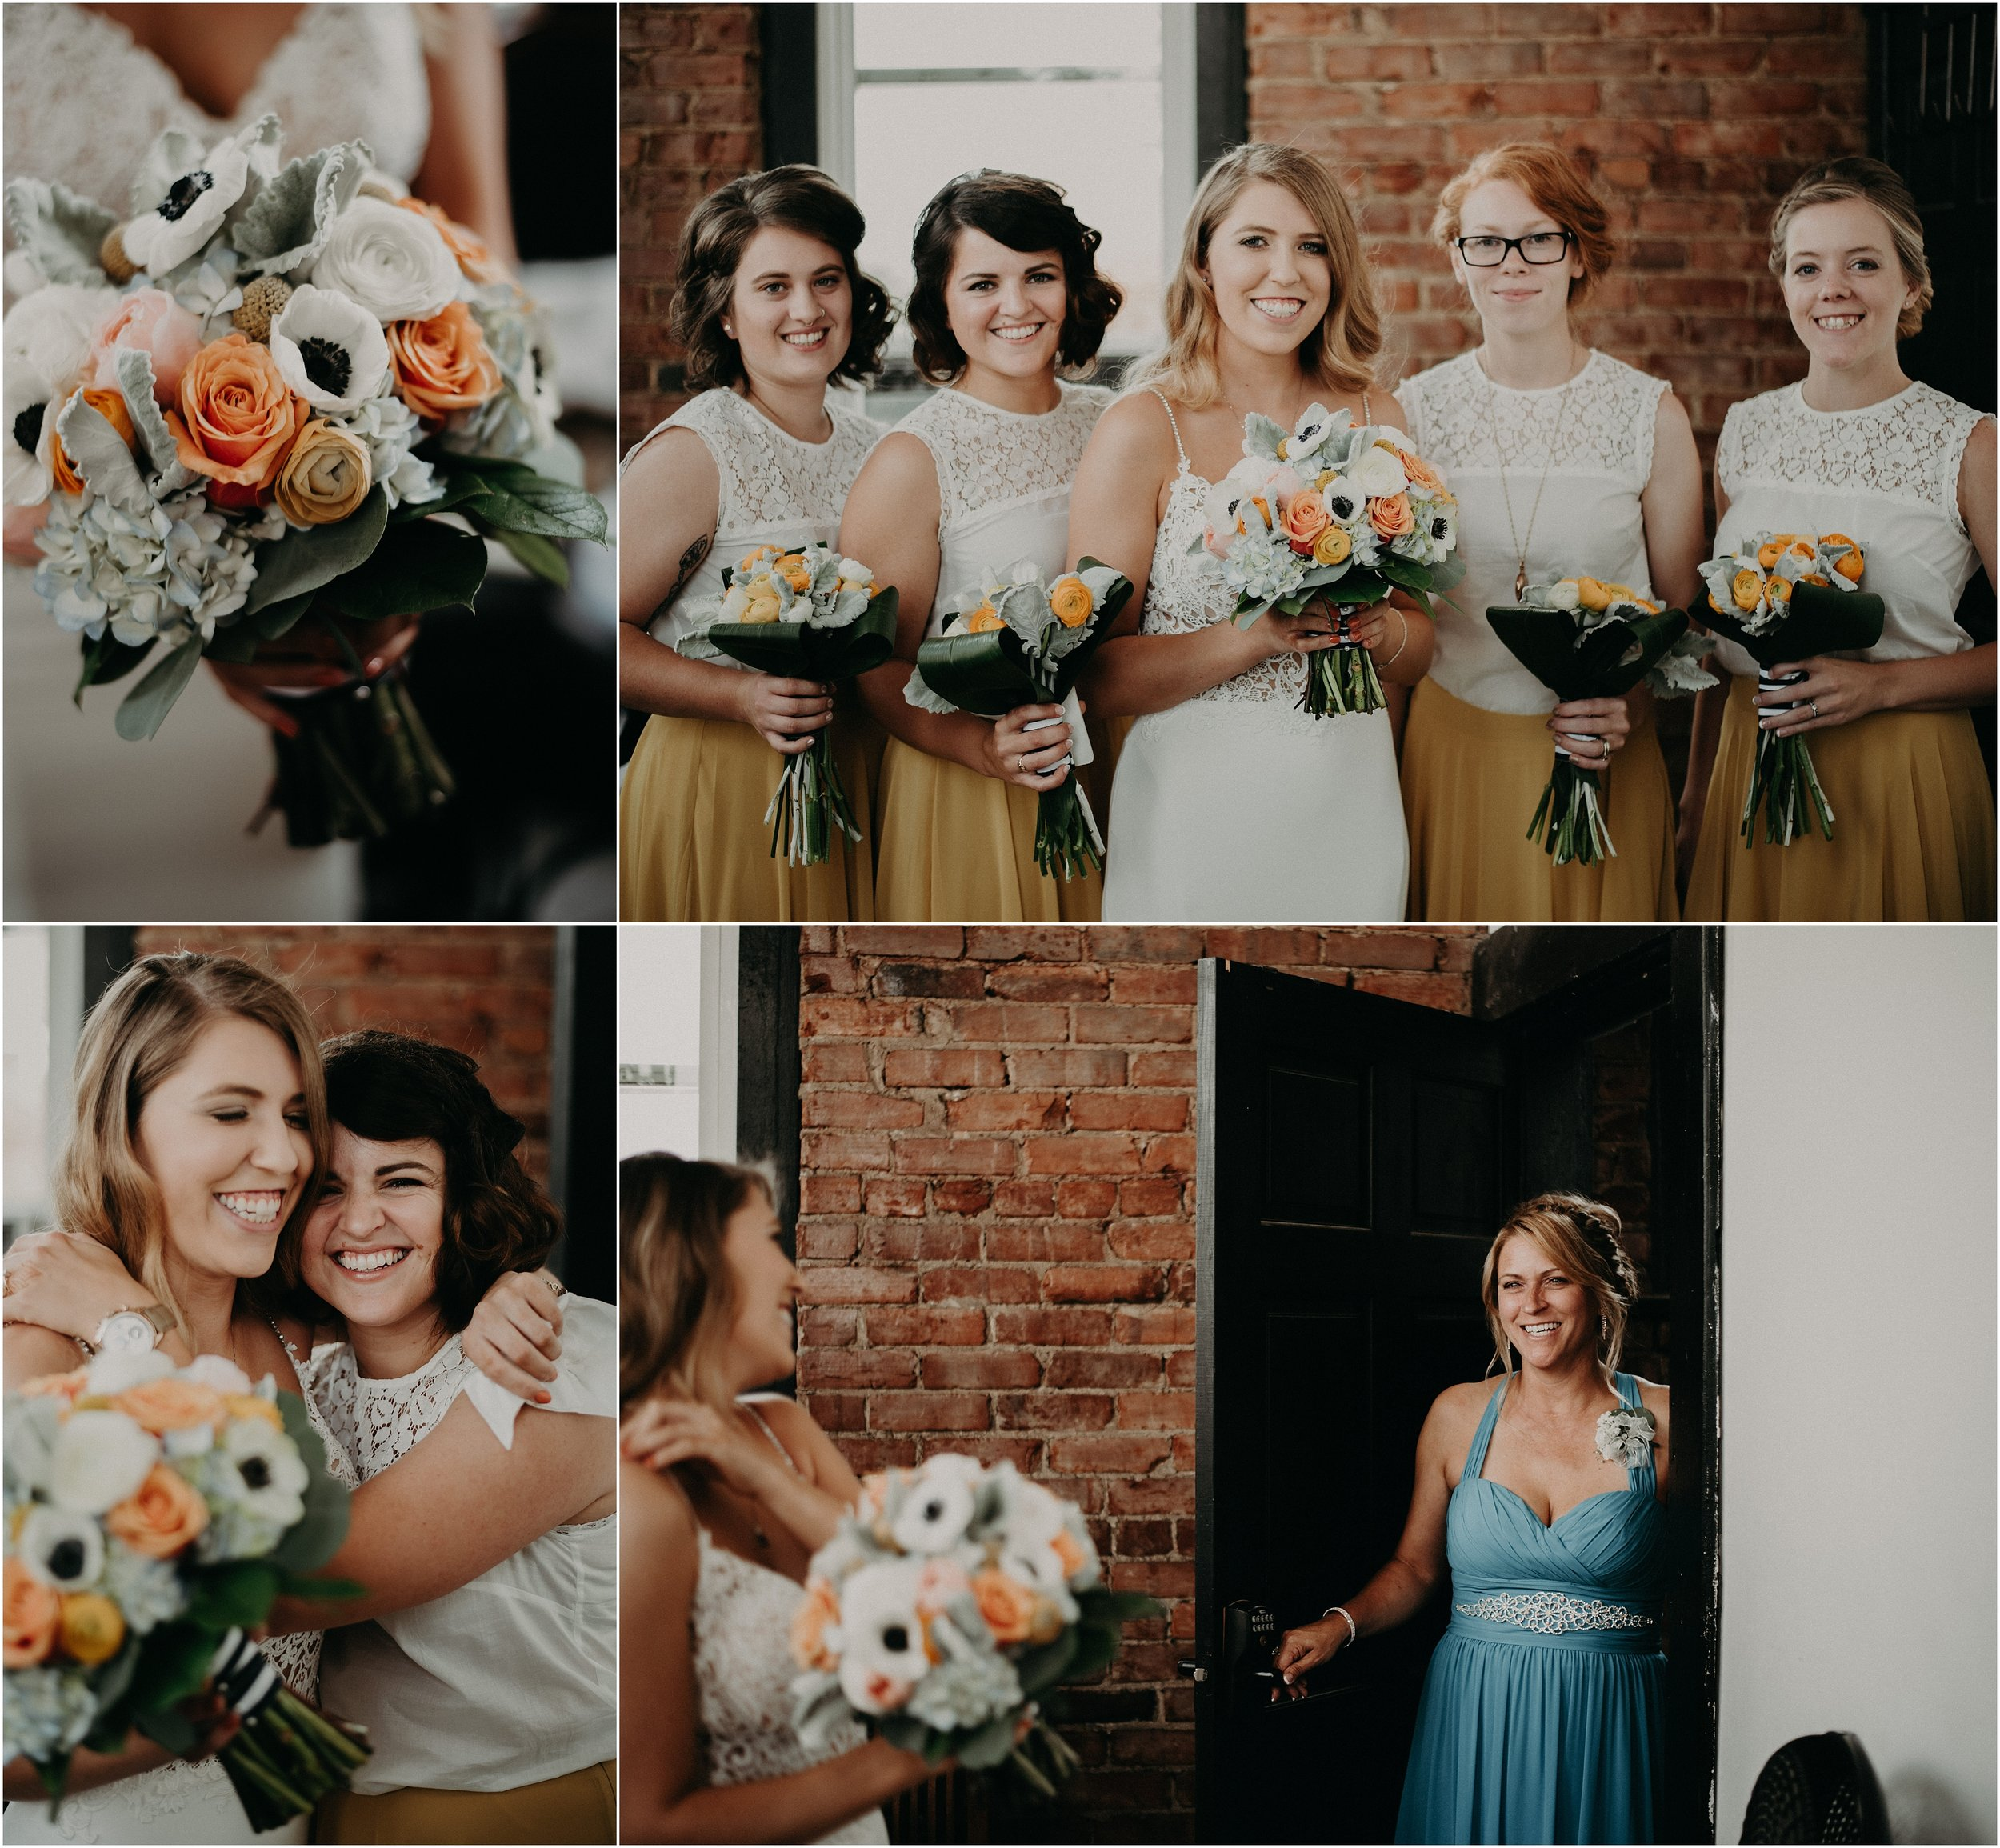 The bride with her bridesmaids and mother before the wedding ceremony